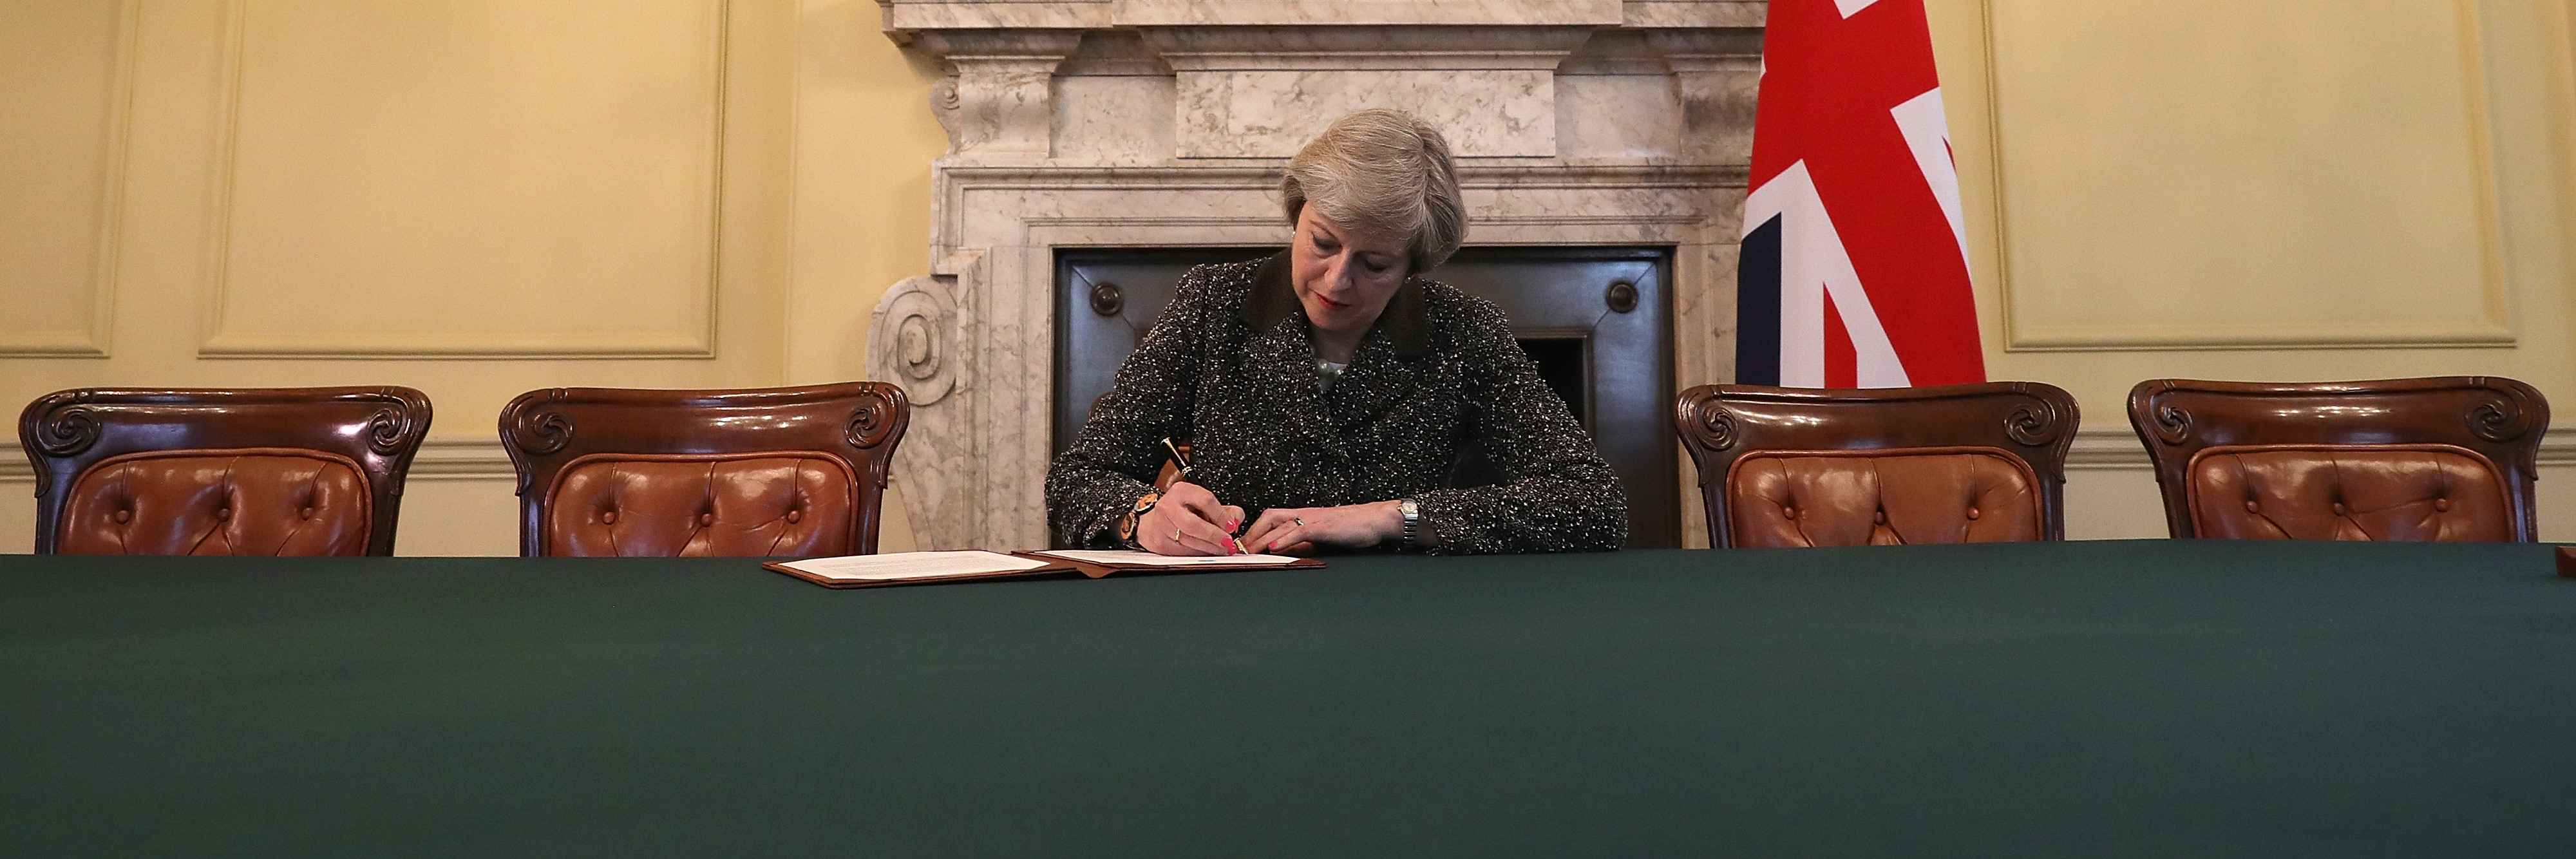 British Prime Minister Theresa May signing the letter to European Council President Donald Tusk invoking Article 50 (Photo: Getty Images/Christopher Furlong)